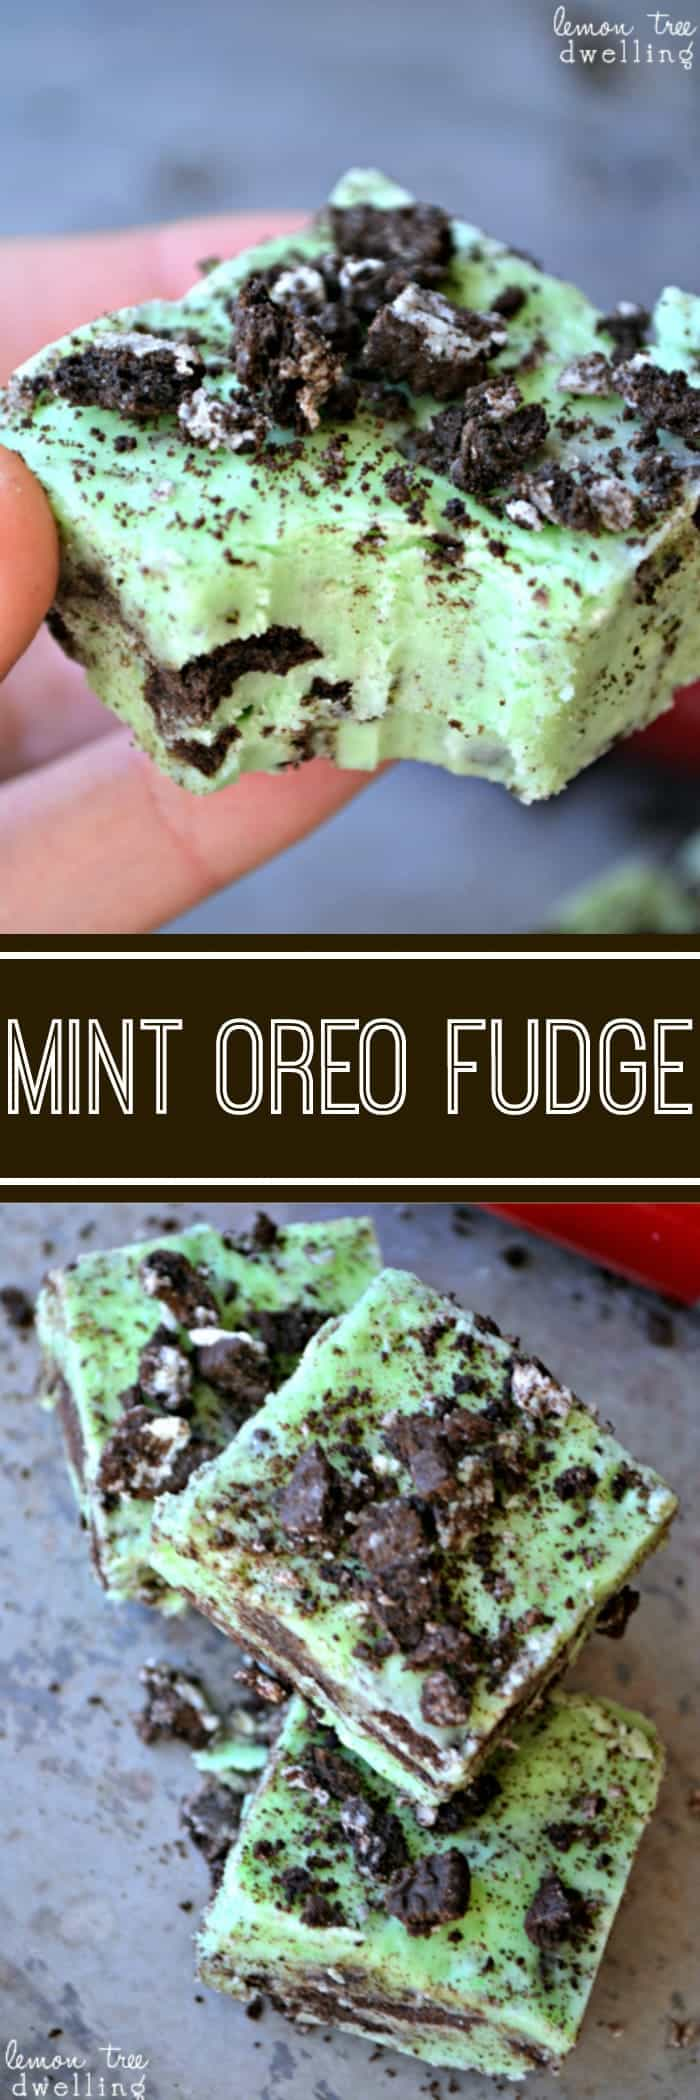 No-Bake Mint Oreo Fudge is a quick and easy dessert ready to share with others. This 5 minute treat is a rich and creamy peppermint fudge filled and sprinkled with chocolatey Oreo cookies.